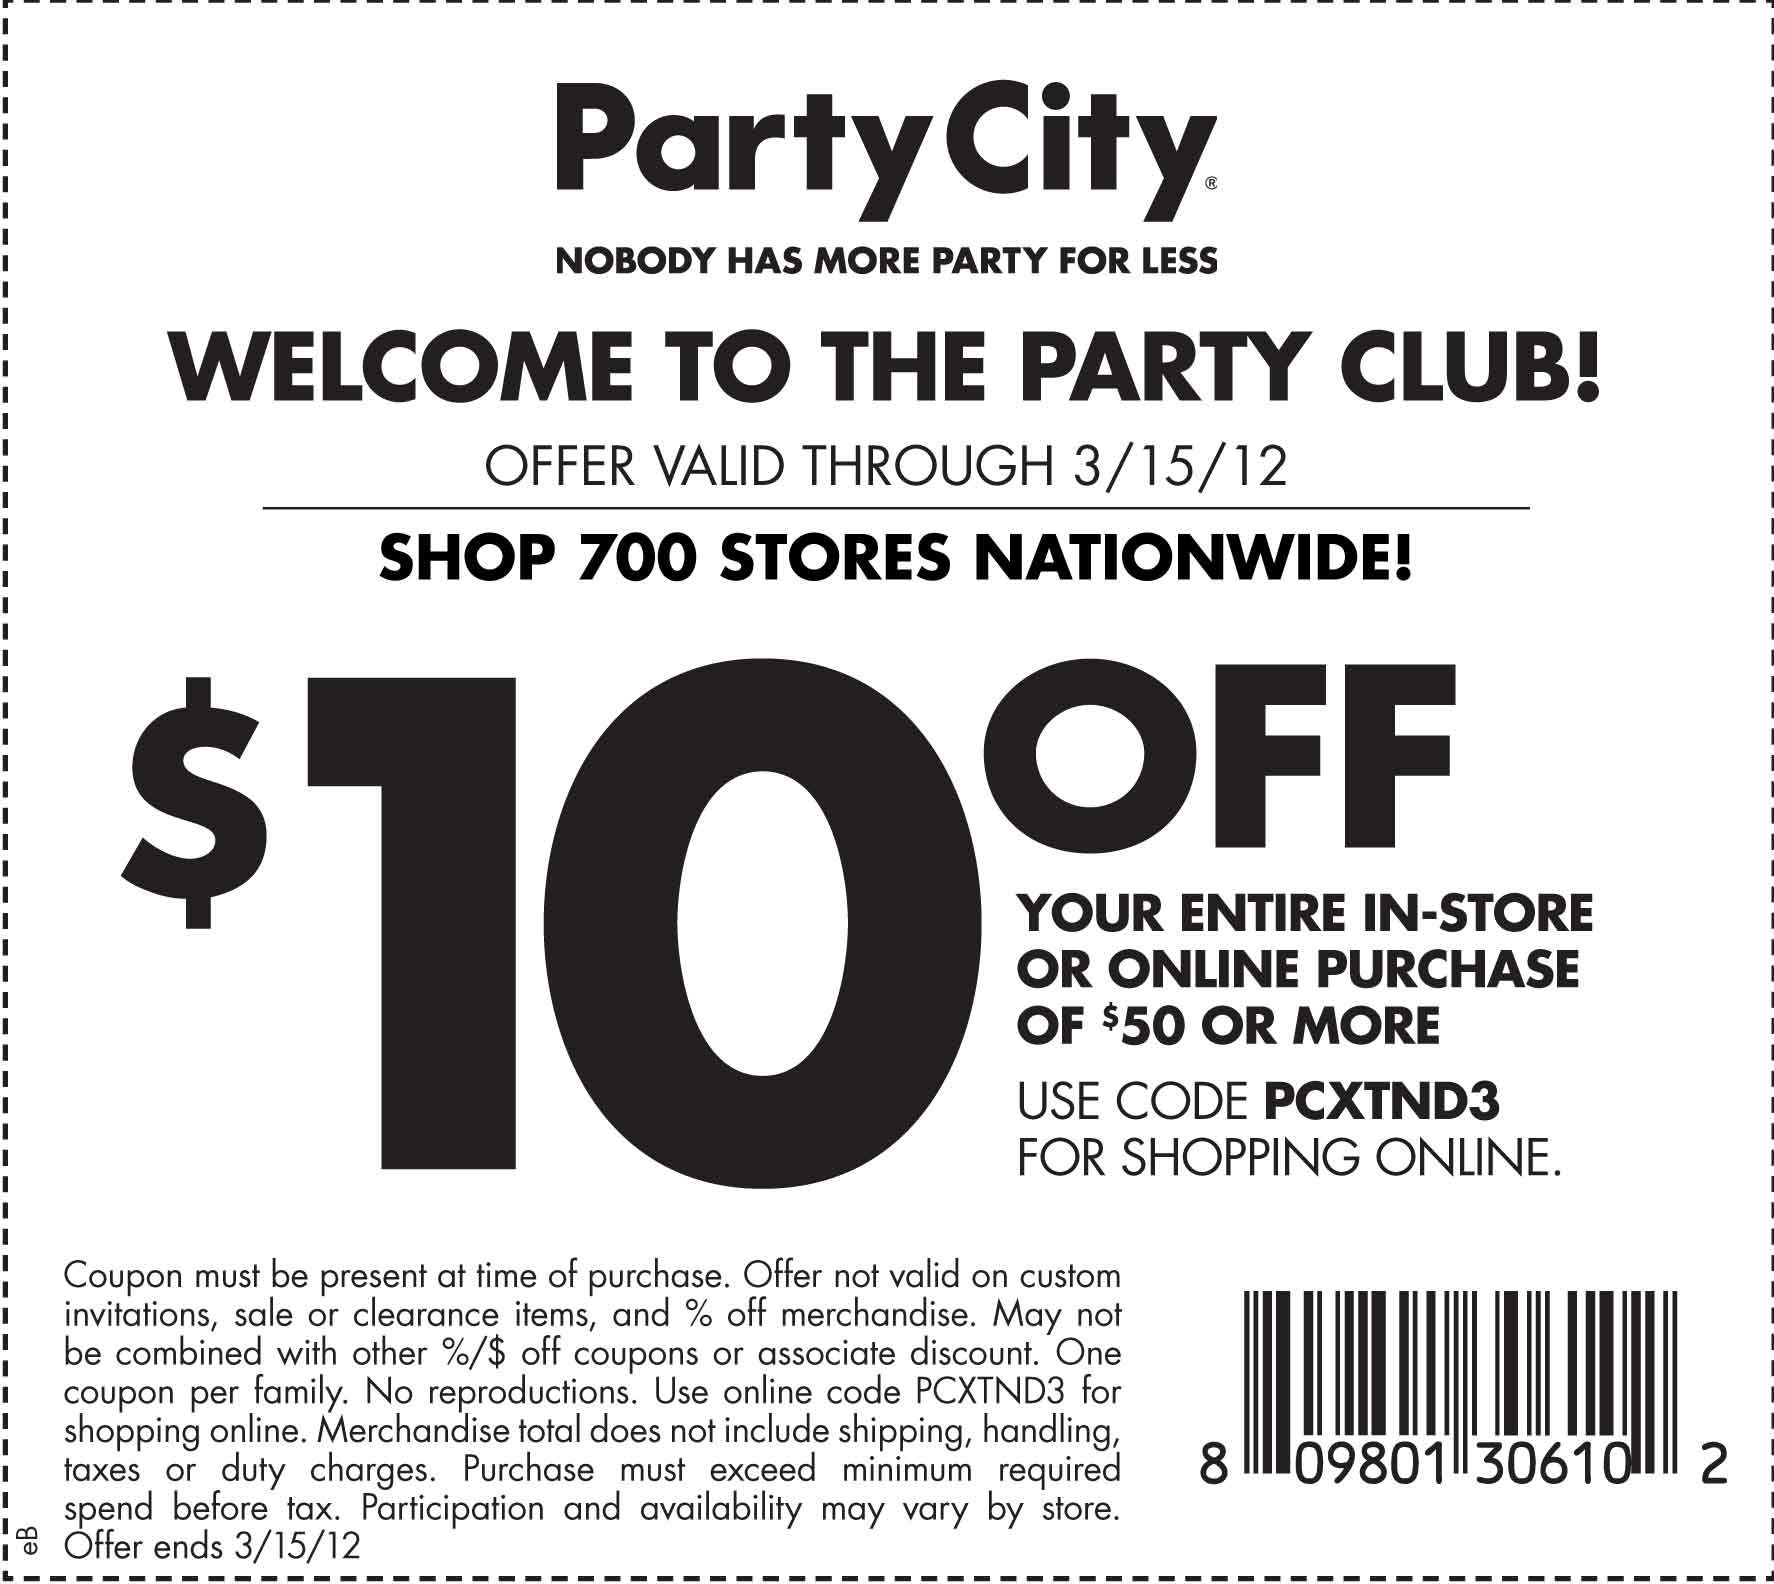 10 dollars off at Party City until March 15th. Party